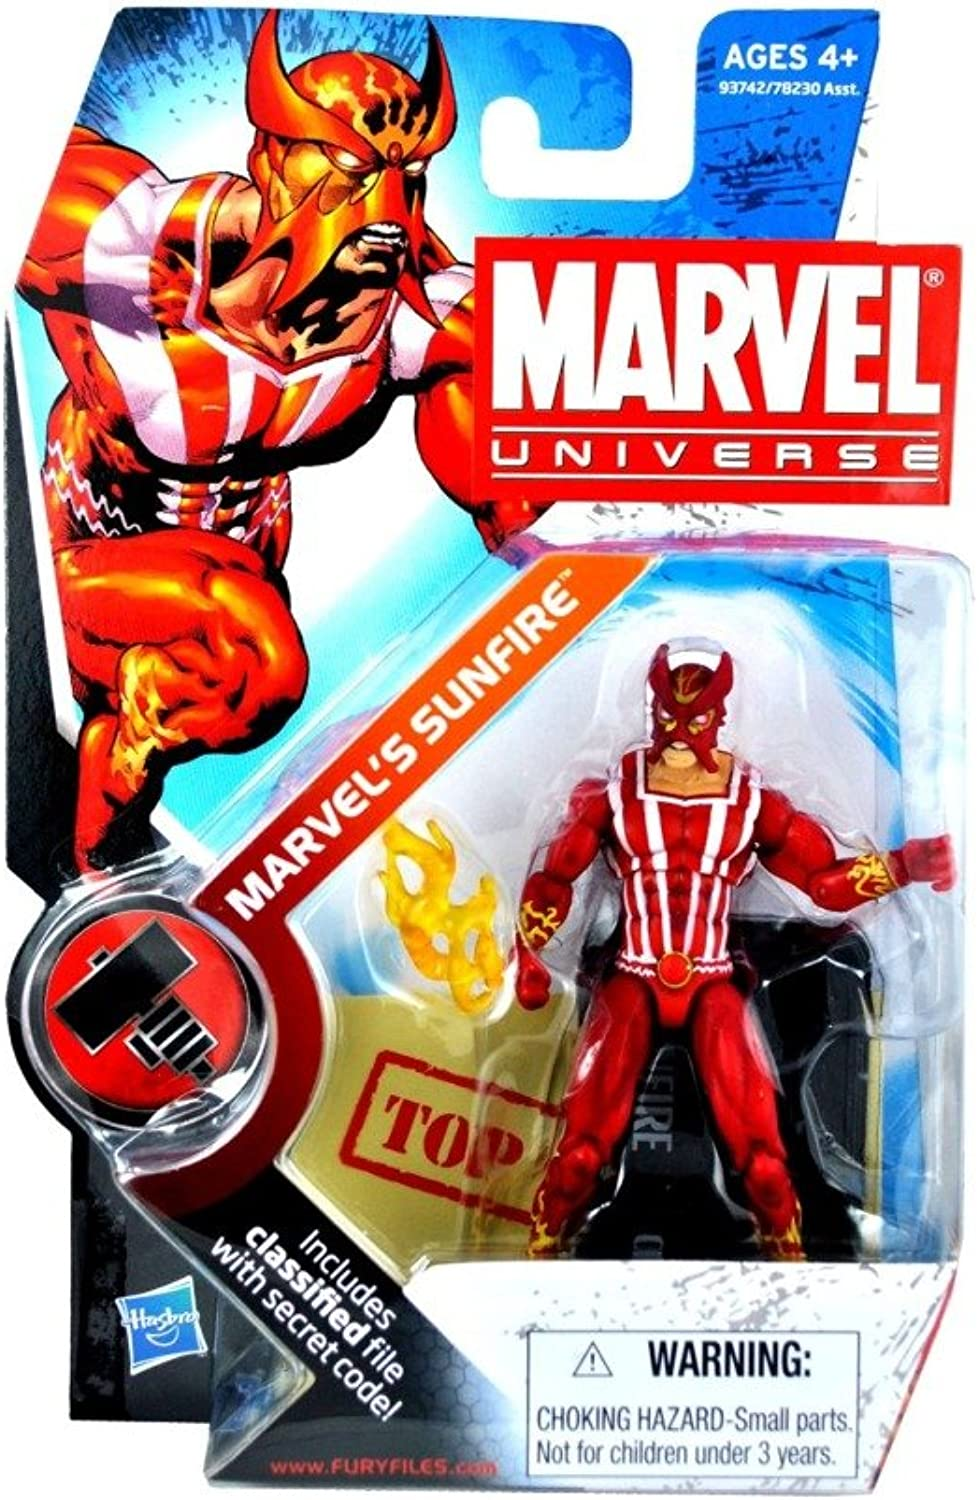 Marvel Universe 3 3 4 Series 6 Action Figure Marvel's Sunfire by Hasbro